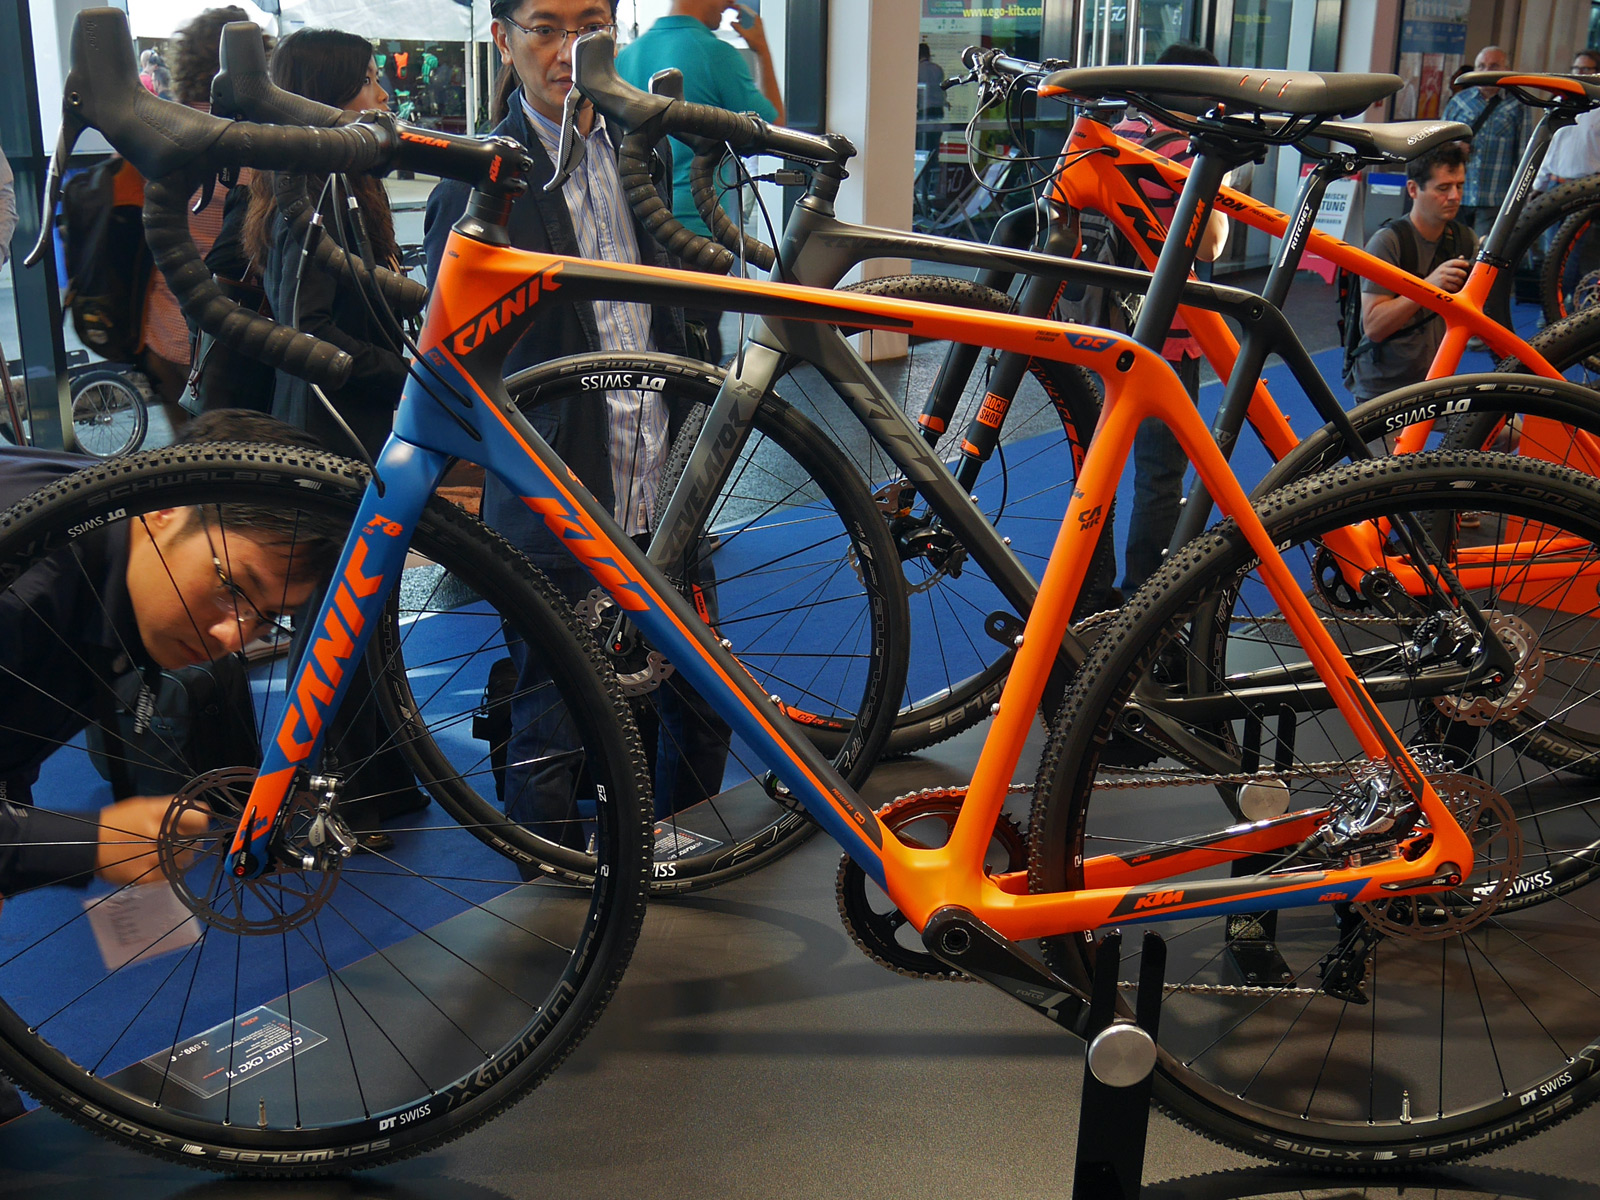 EB15: More KTM - Updates to the road Revelator and Canic cyclocross ...